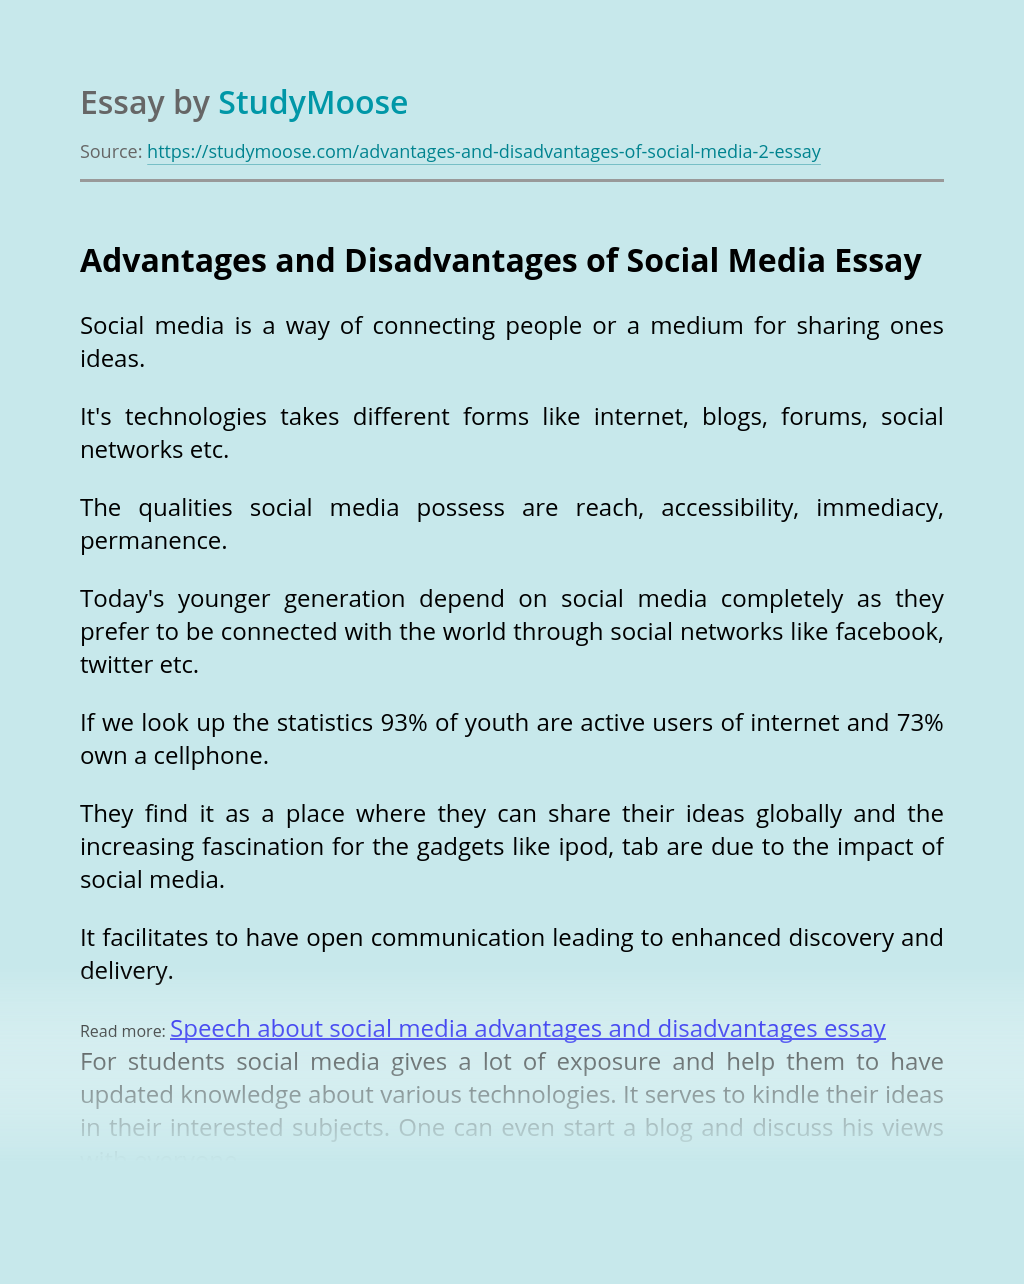 Way of connecting people - Social Media